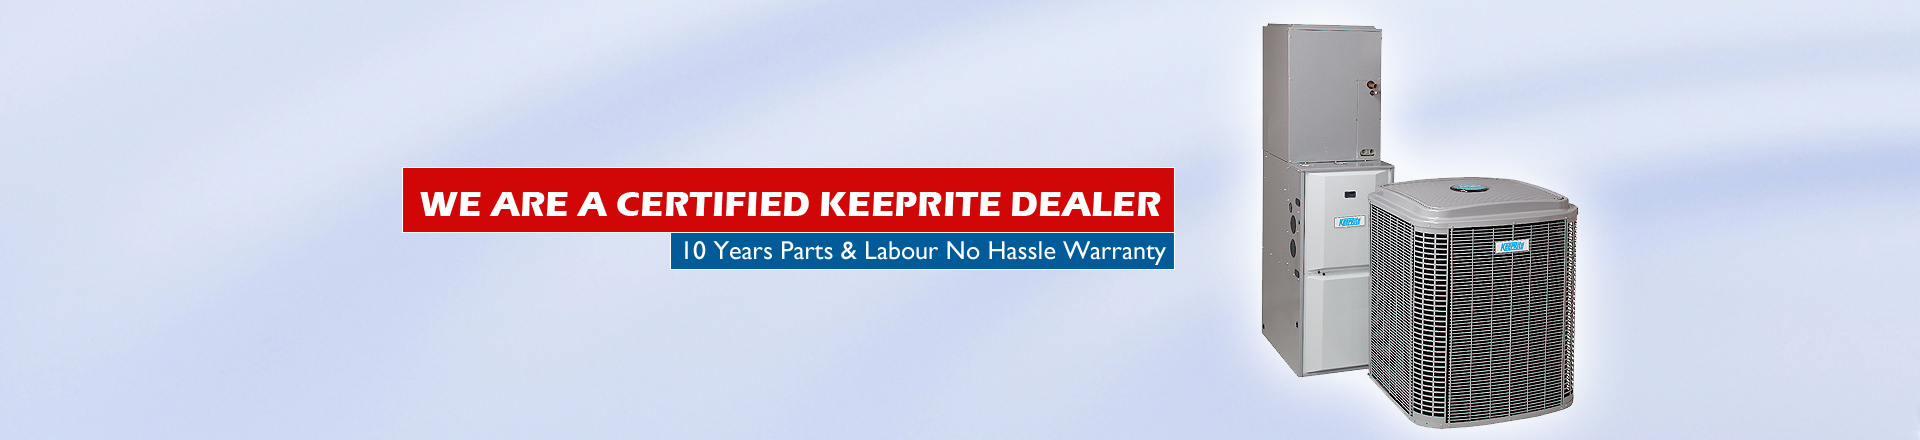 Certified-Keeprite-Dealer3